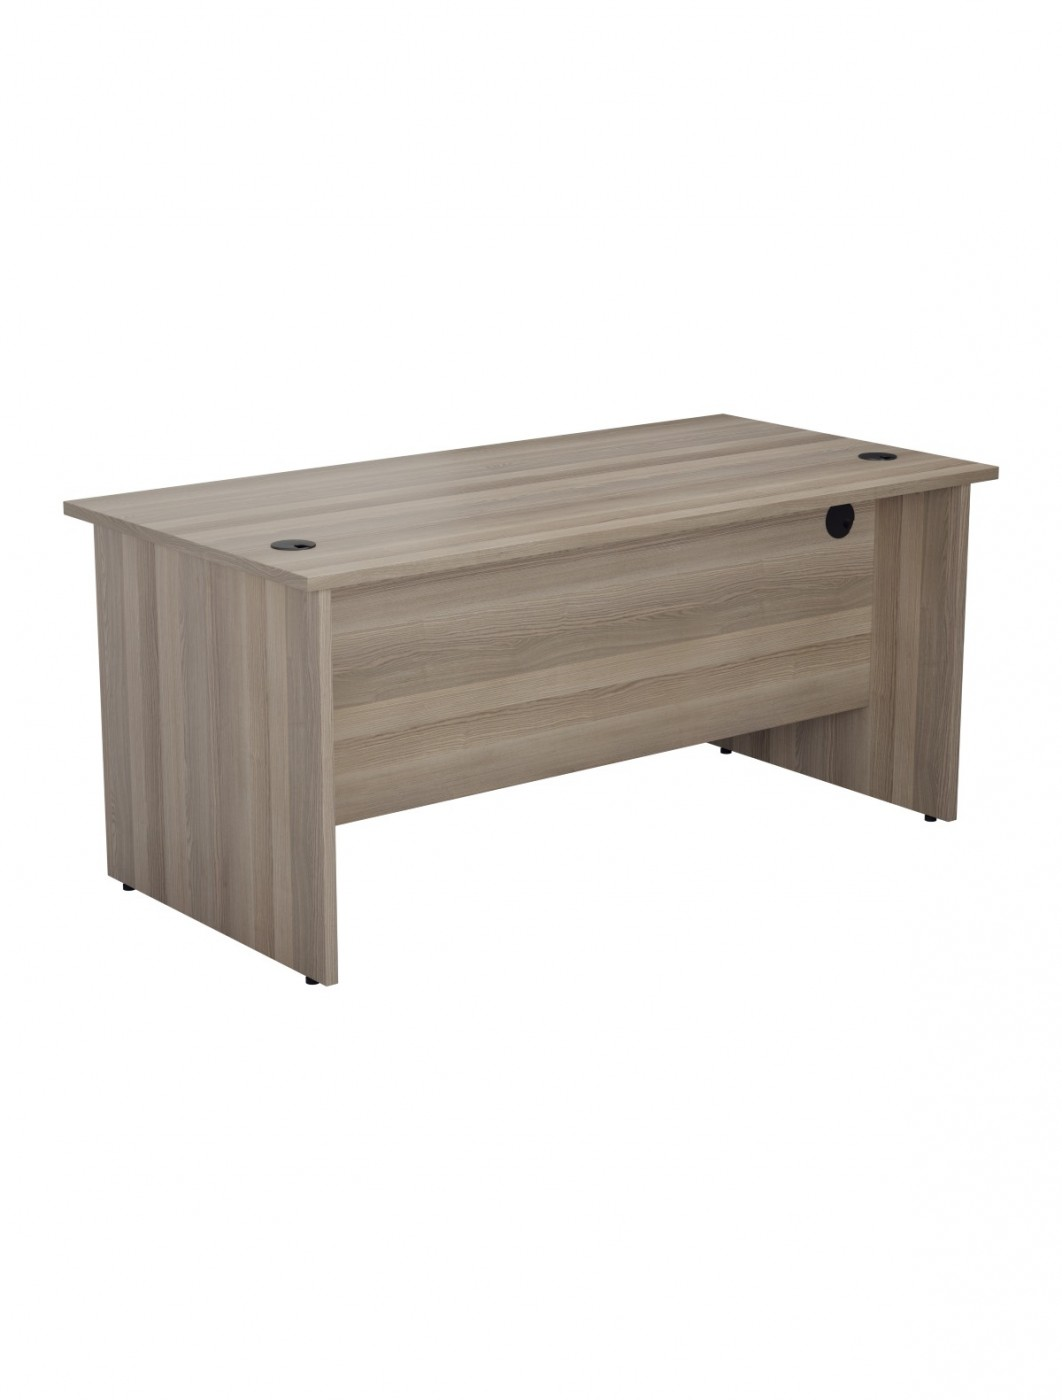 Grey Oak Office Desk 1200x800mm TC One Panel Desk OPR1280PGO